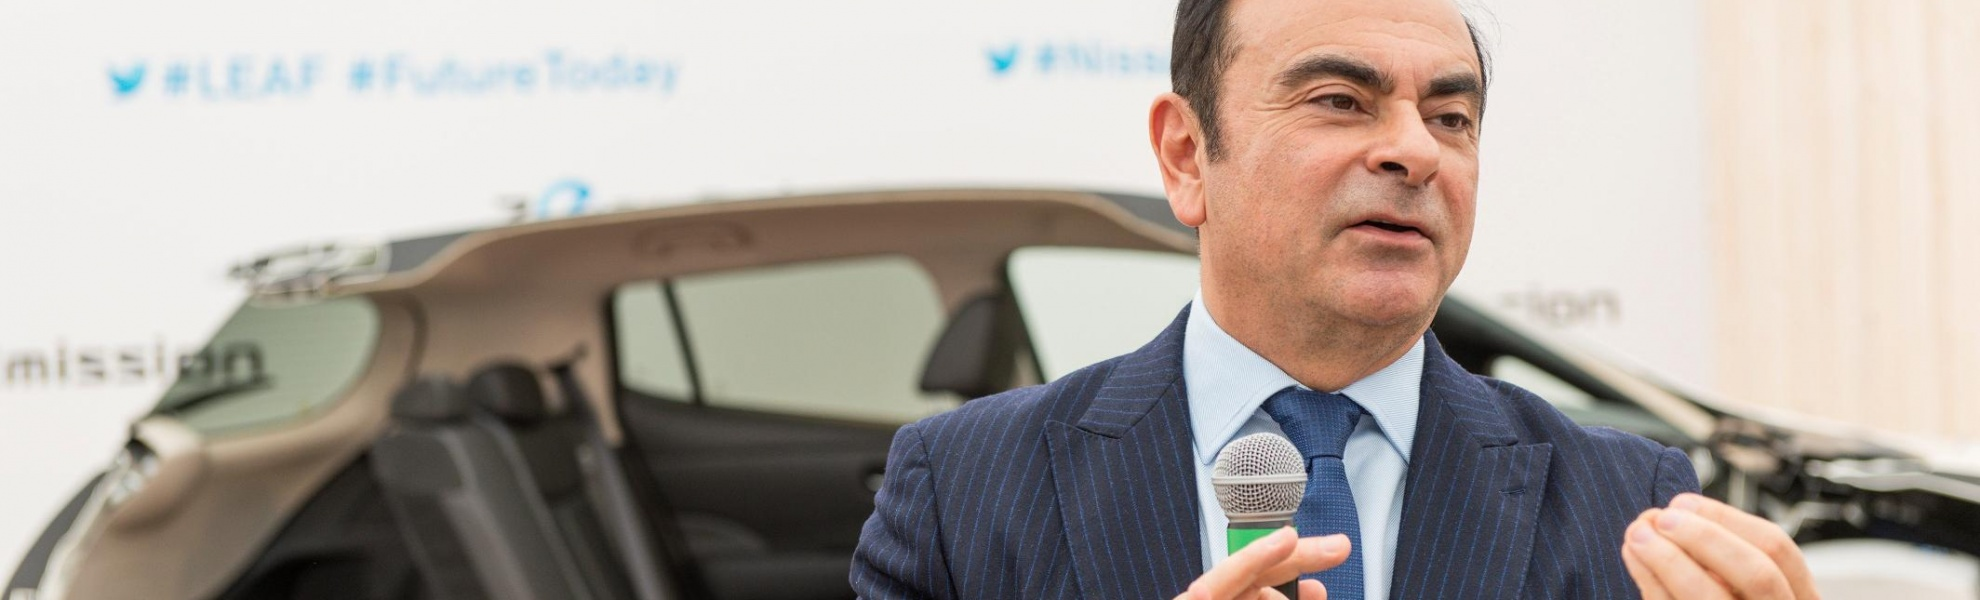 carlos_ghosn_nissan.jpg